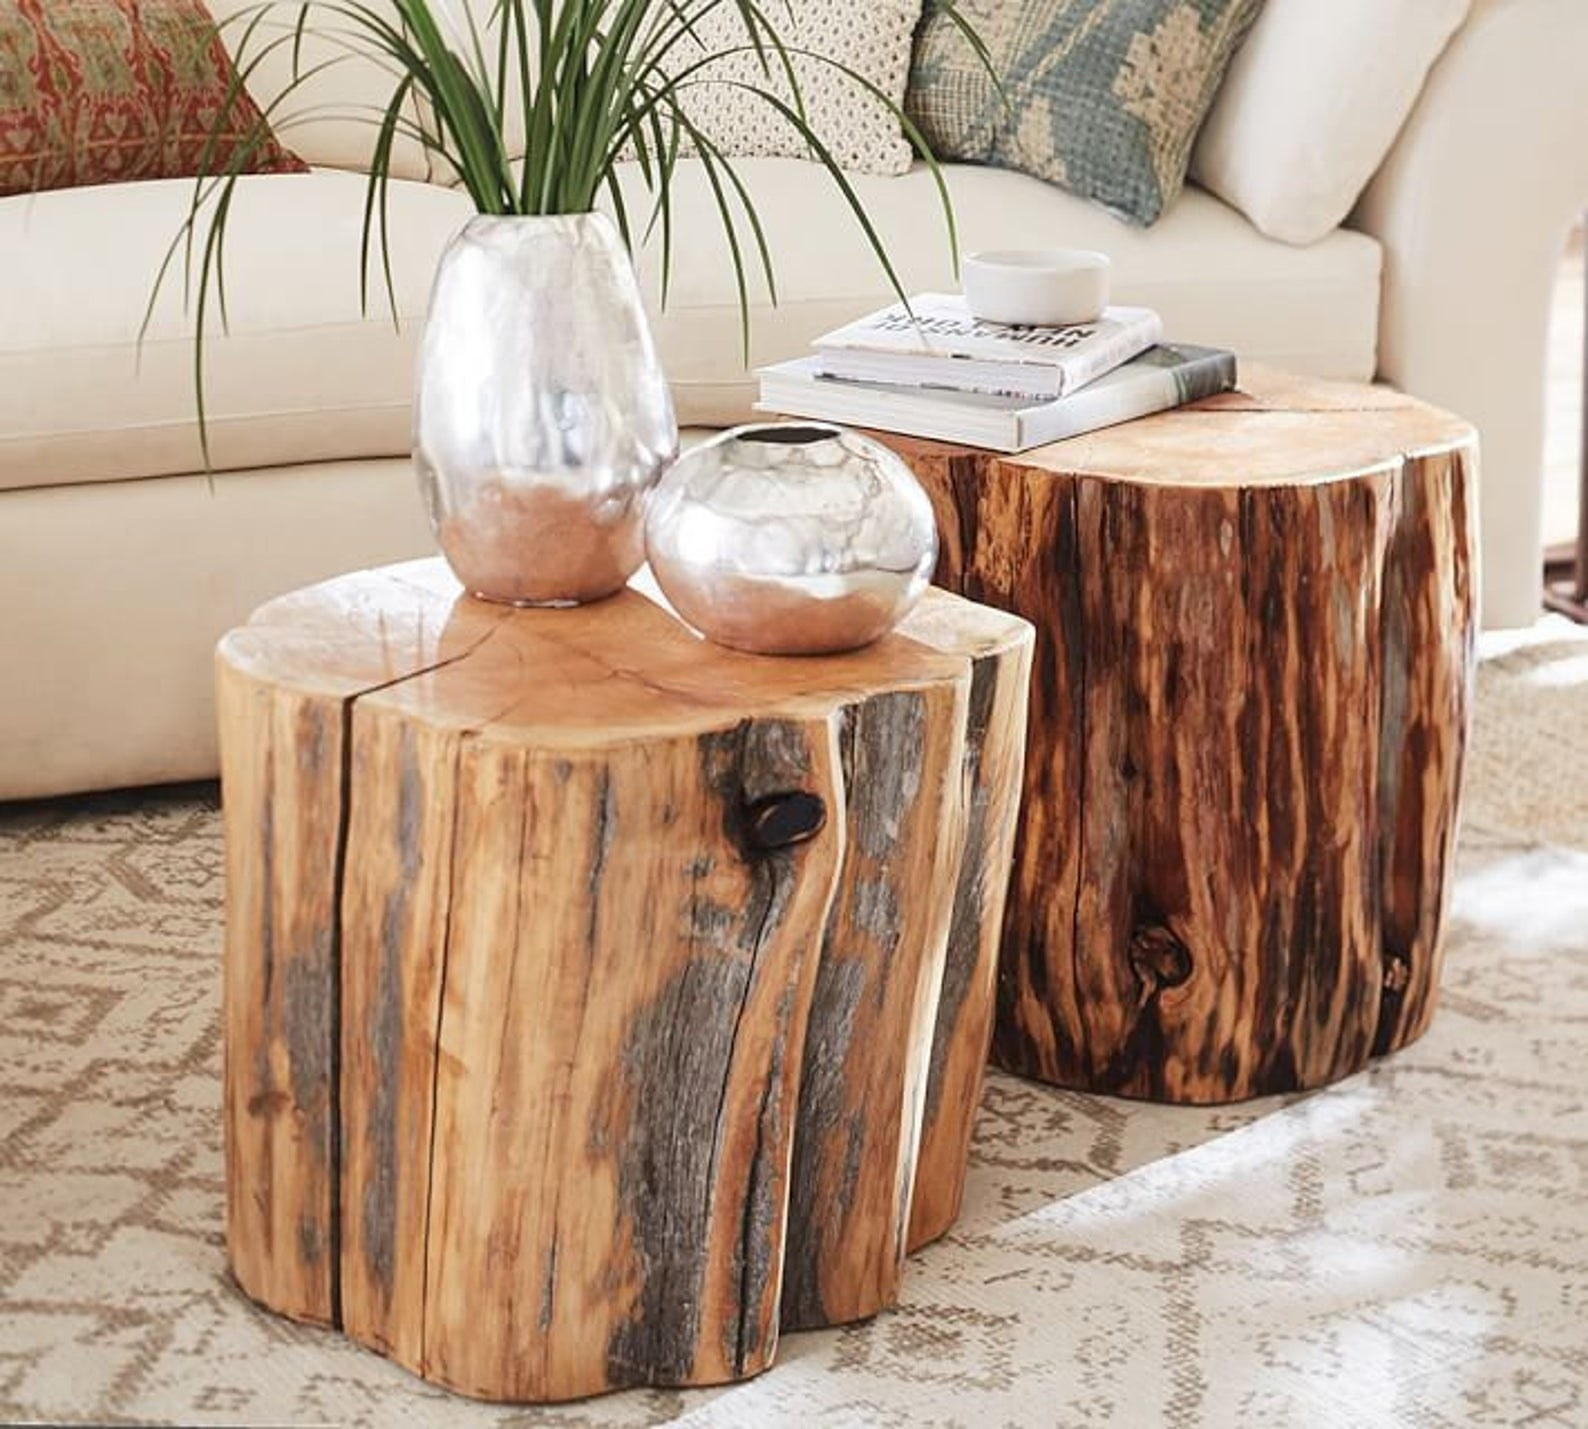 The tables that look like logs from a tree